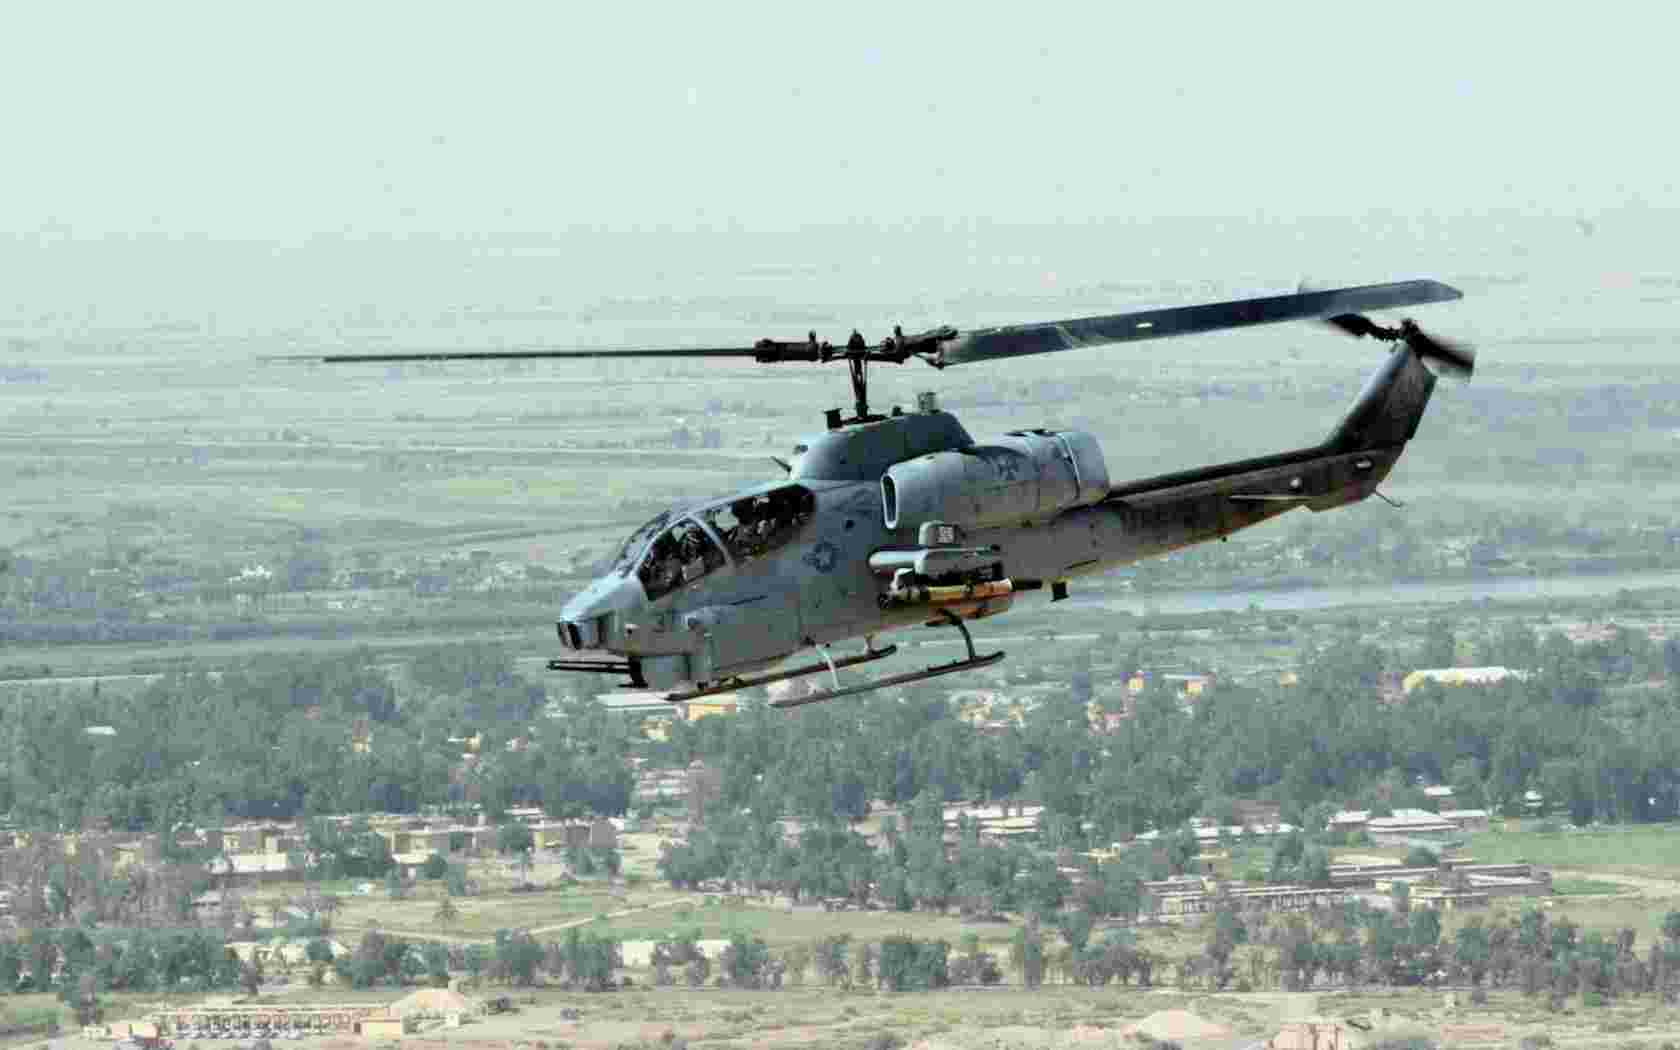 Bell AH 1 Cobra helicopter wallpaper   Aviation   Military   Wallpaper 1680x1050